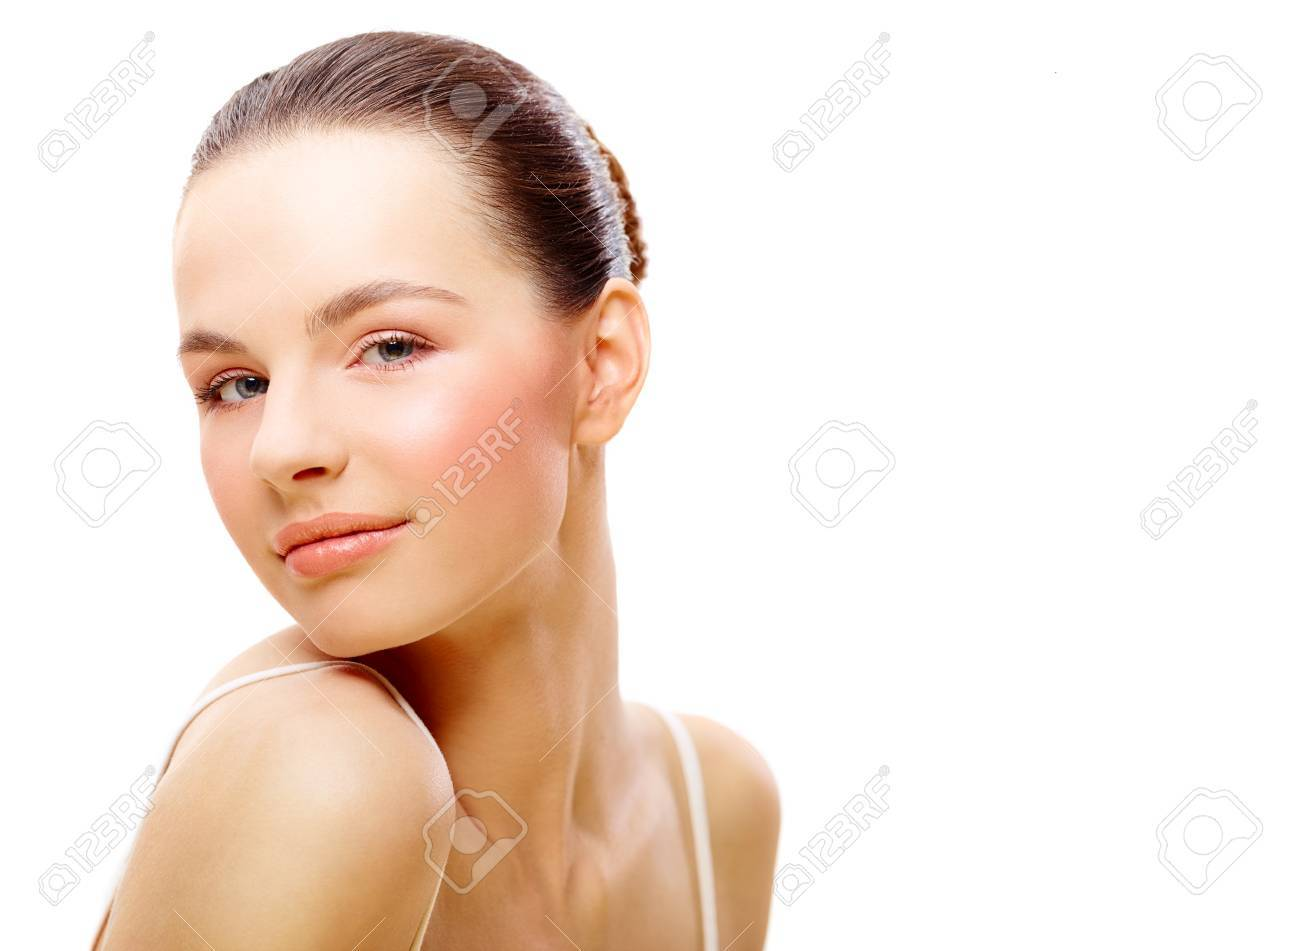 Young female beauty portrait over isolated white background Stock Photo - 17159295